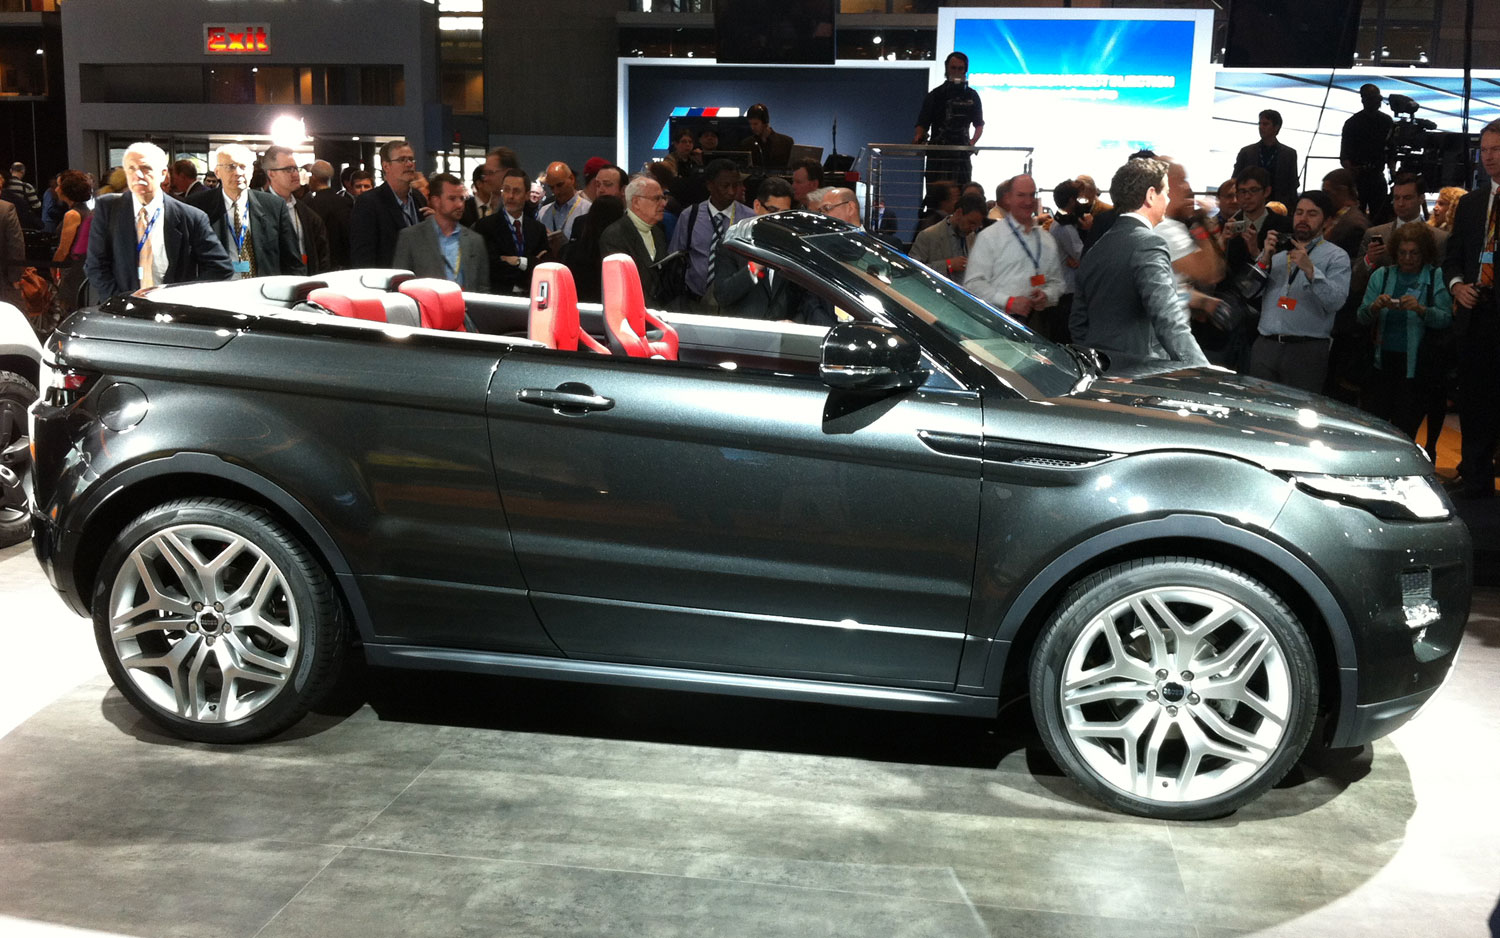 https://st.automobilemag.com/uploads/sites/11/2012/04/Range-Rover-Evoque-Convertible-Concept-side-view.jpg